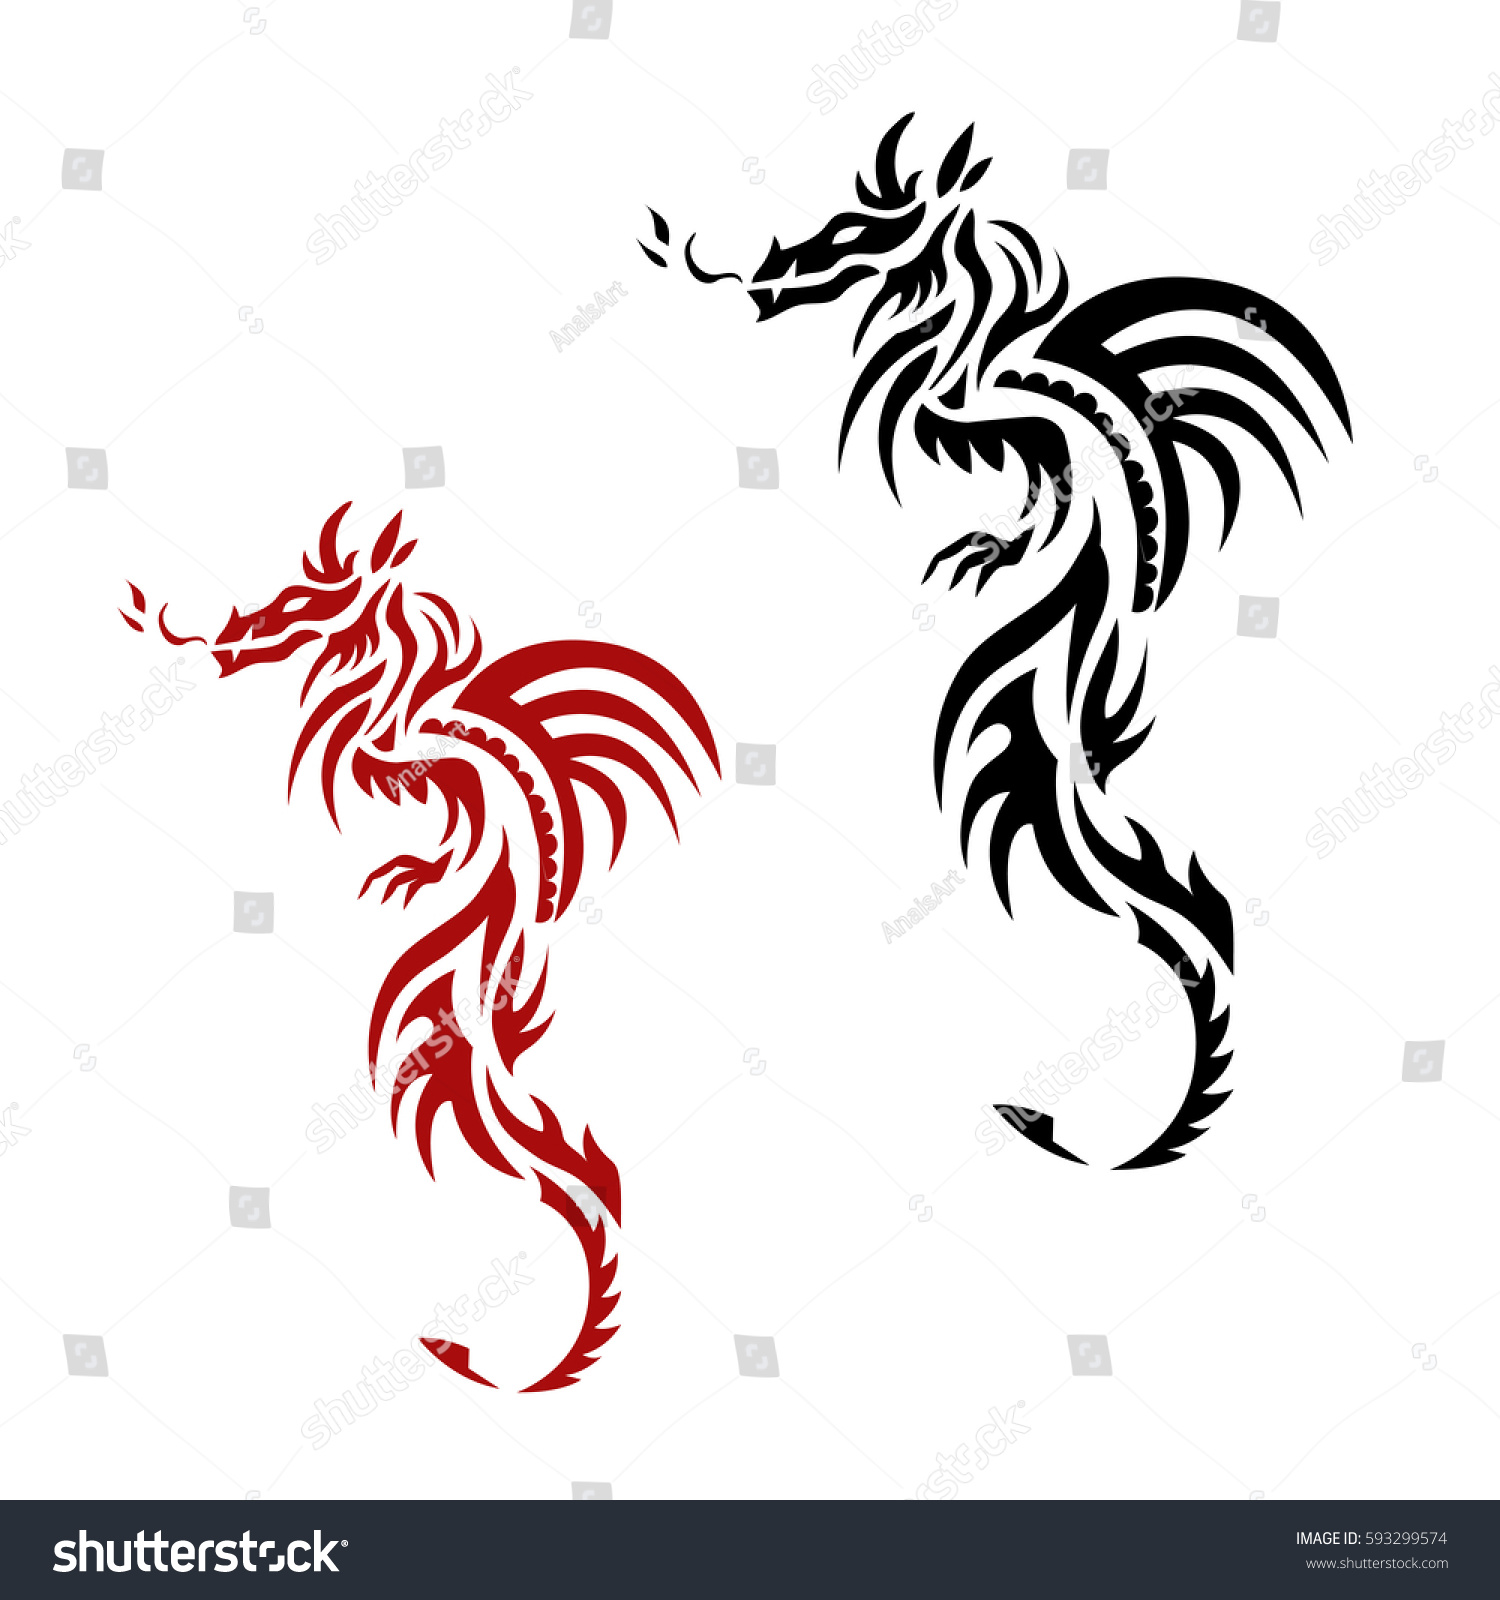 Set red black dragon tattoo traditional stock vector 593299574 set of red and black dragon tattoo traditional chinese asian style the symbol of wealth buycottarizona Images